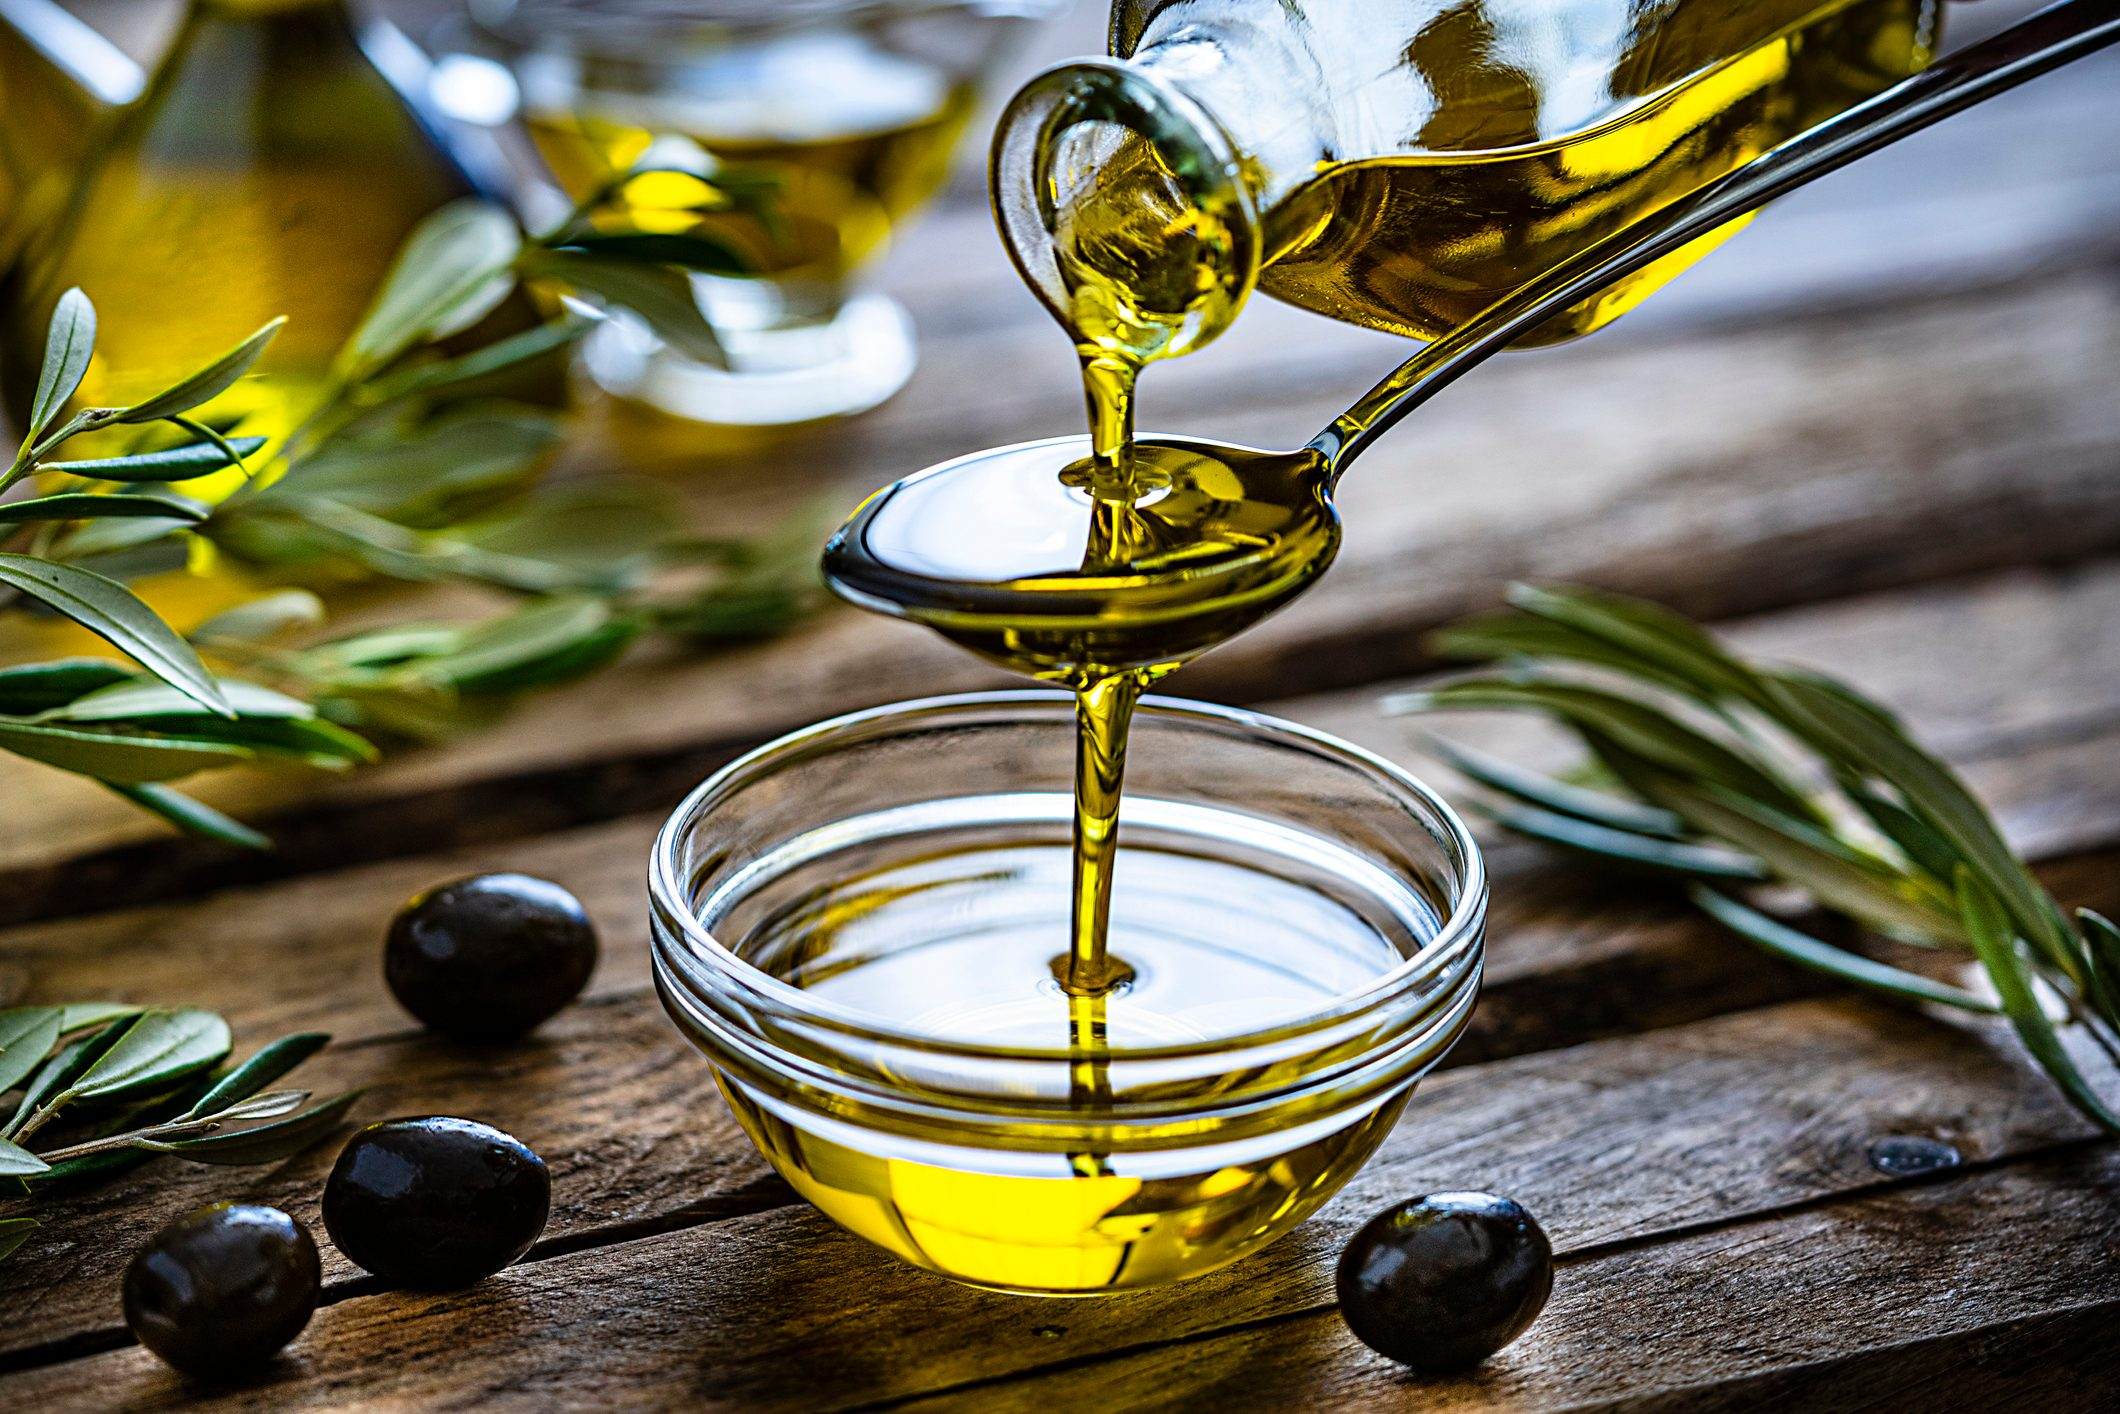 Pouring extra virgin olive oil in a glass bowl